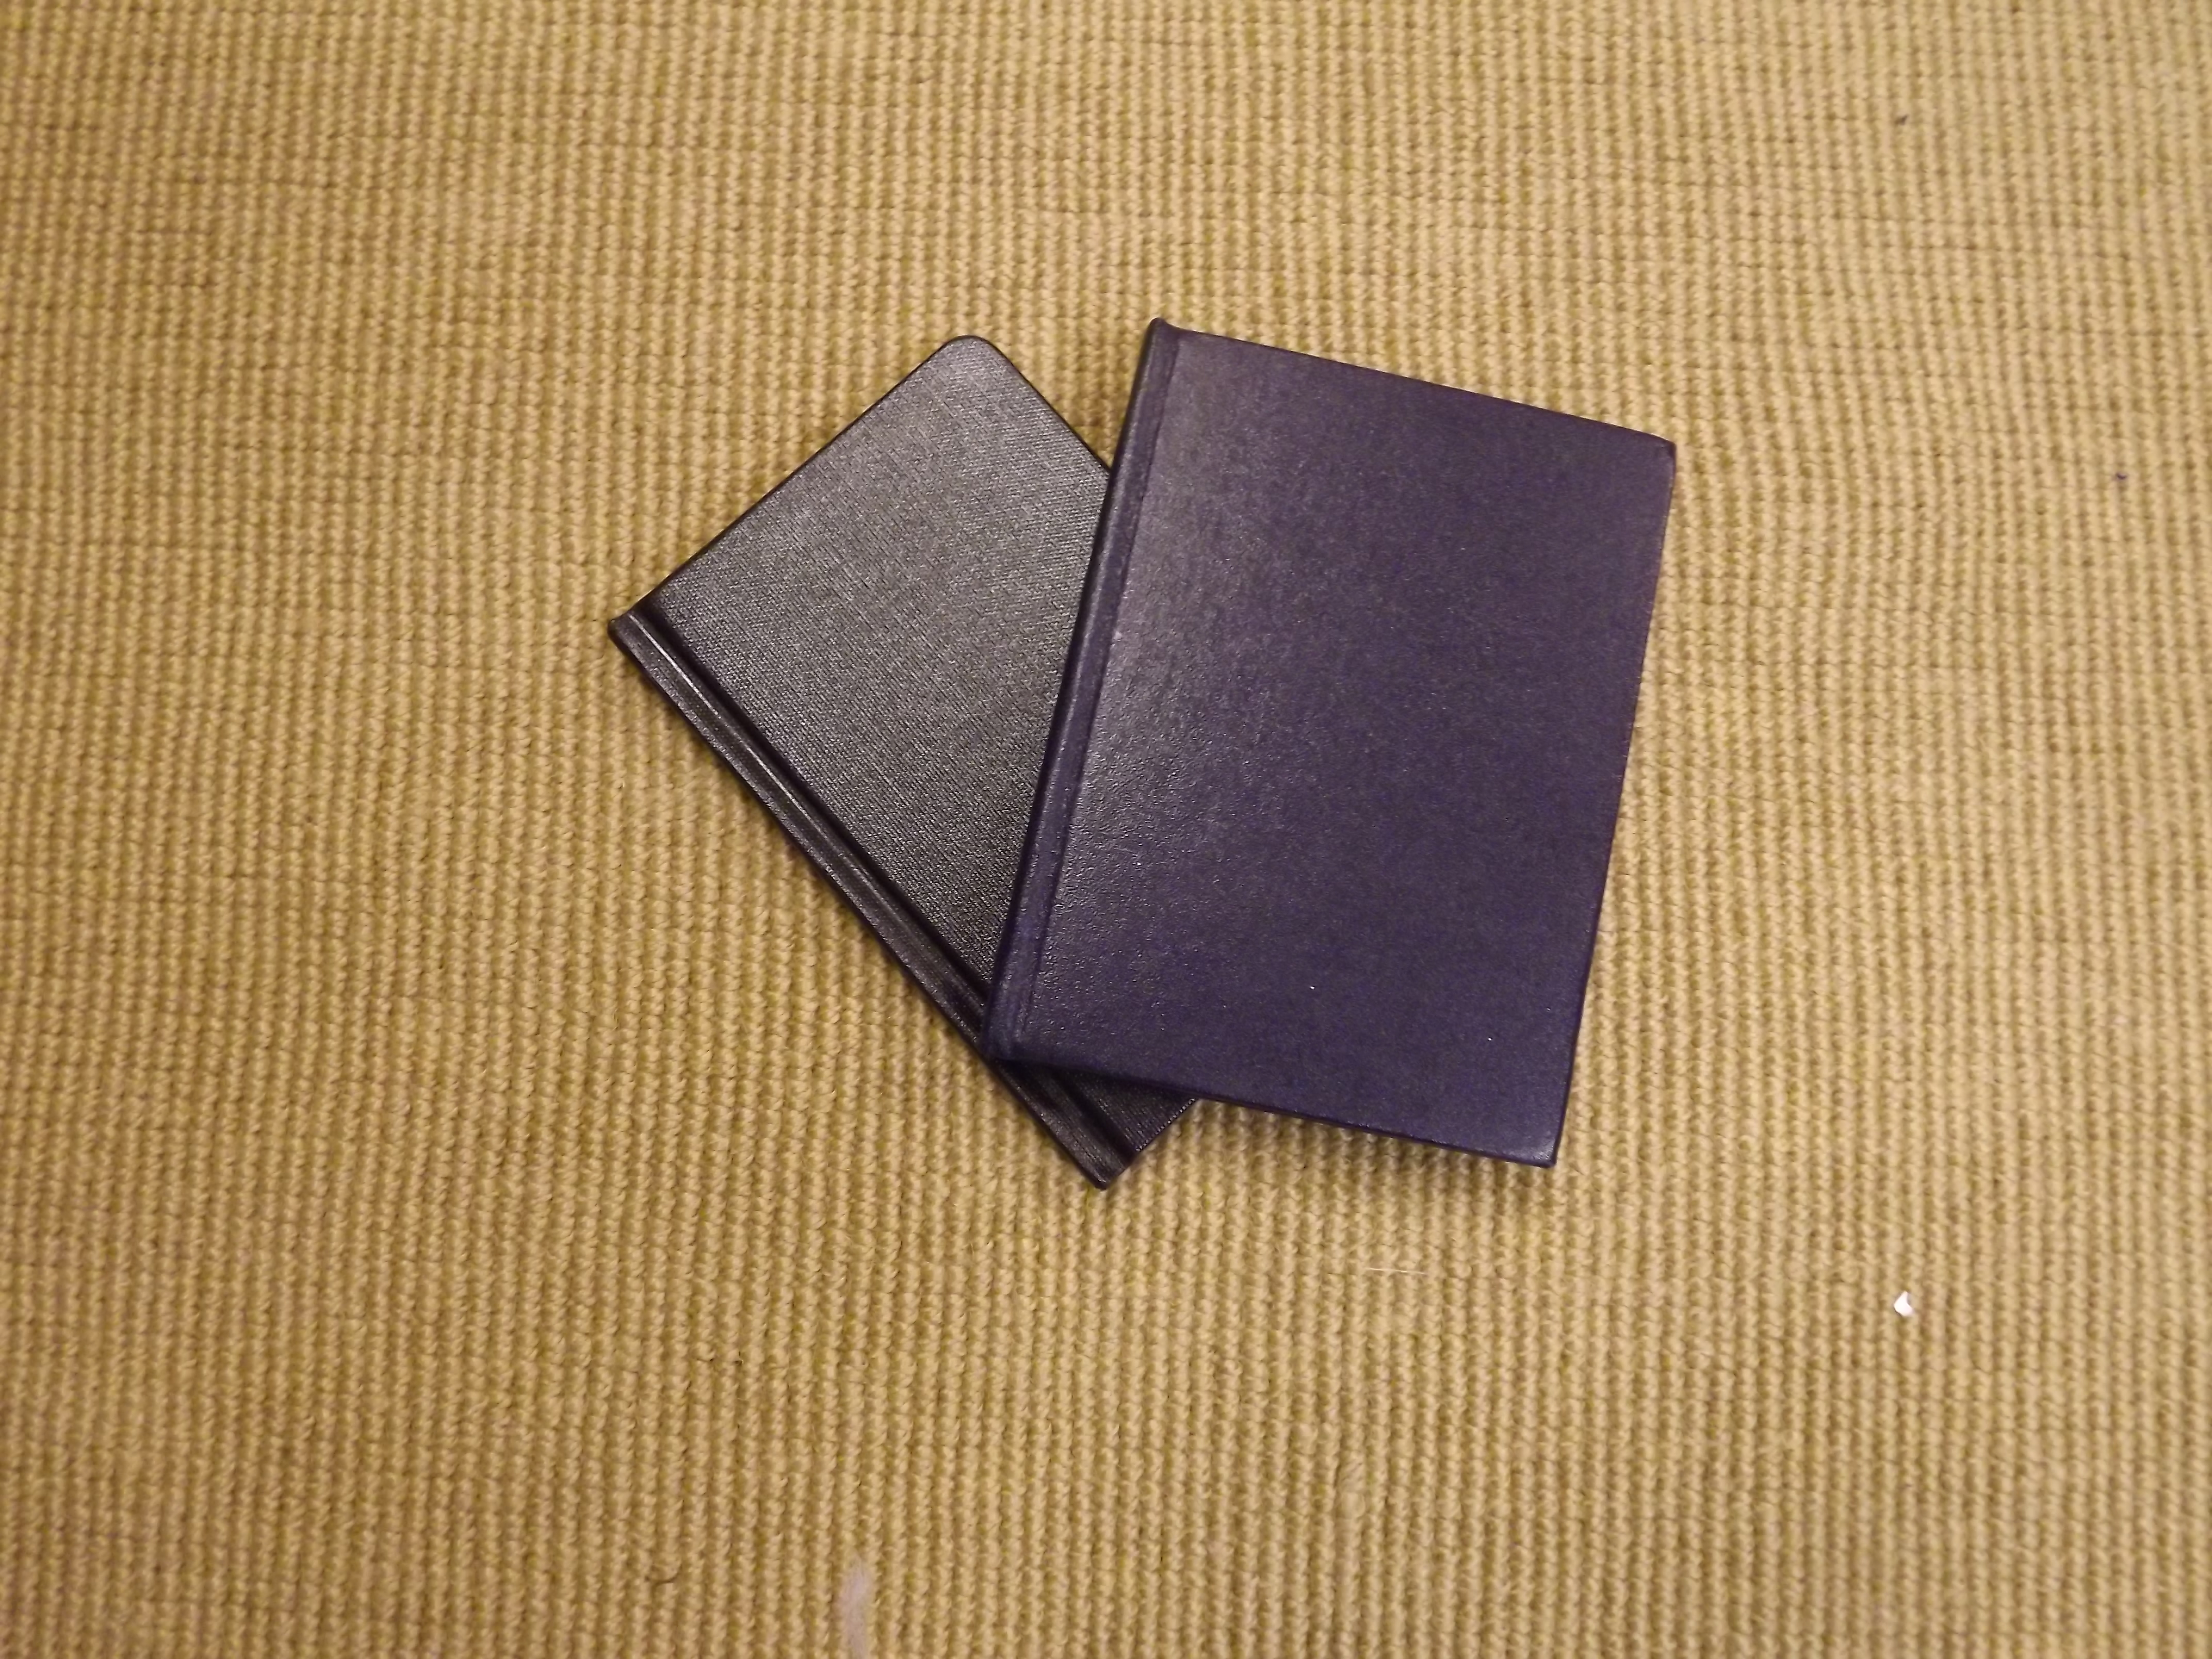 White leather apron lecture - Presentation Bibles 35 00 Rituals Ns And Webb 32 50 Each